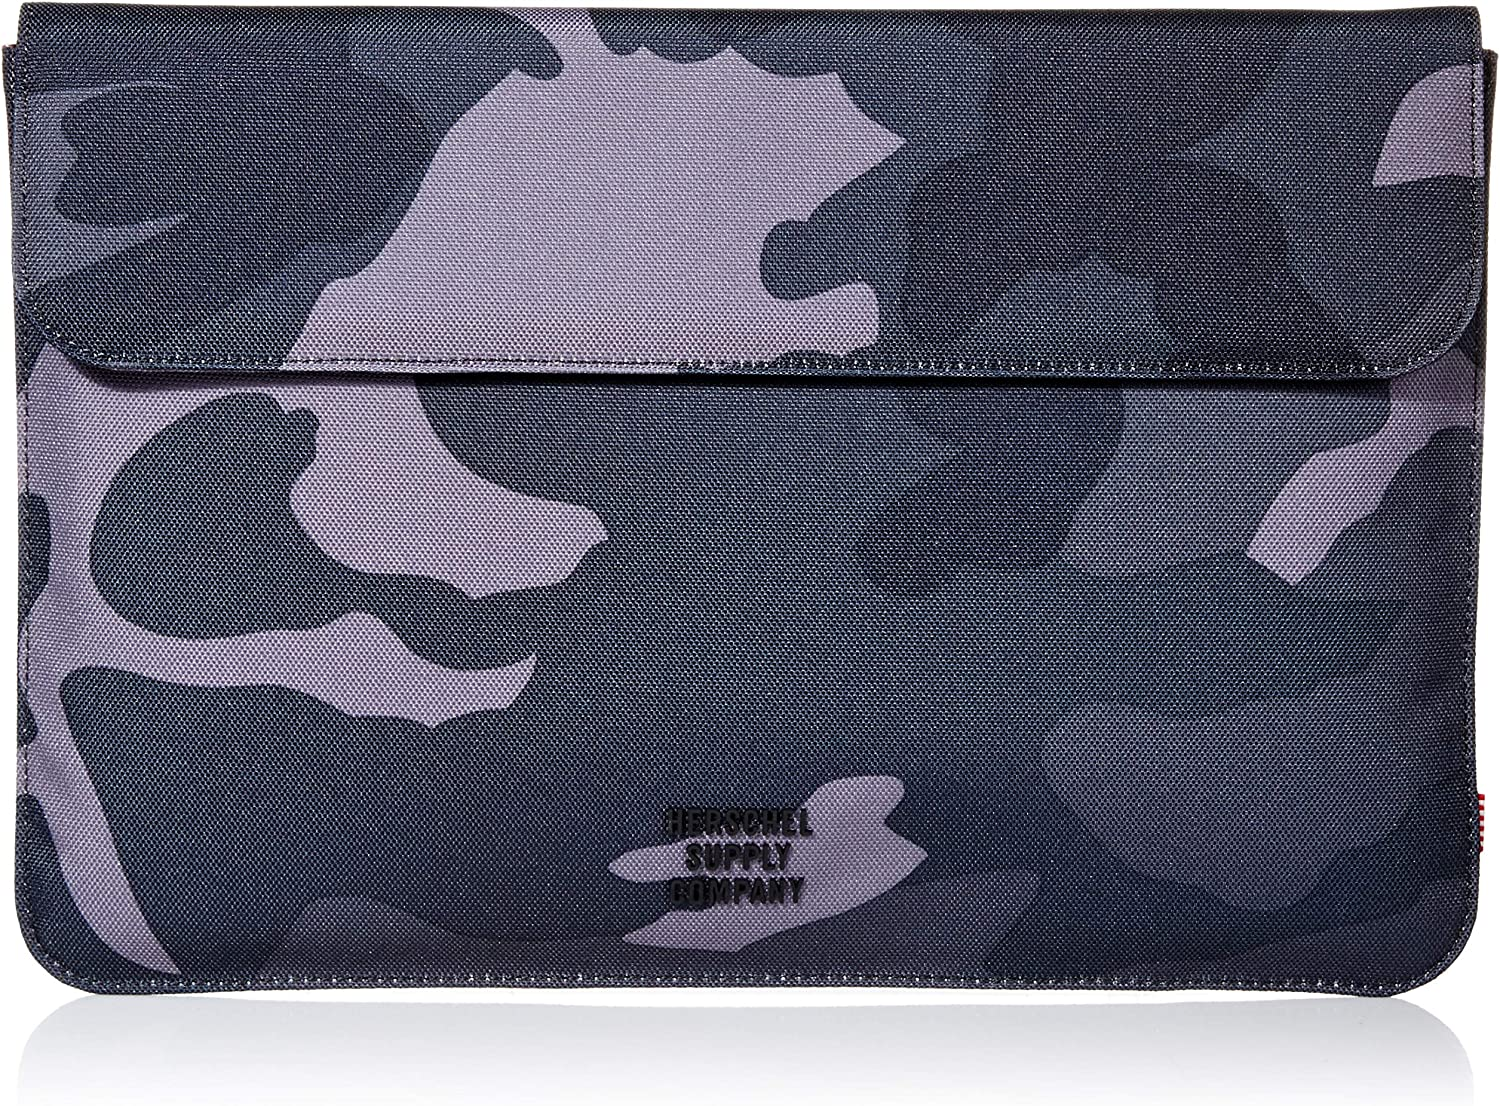 Herschel Spokane Sleeve for MacBook/iPad, Night Camo, 12-Inch